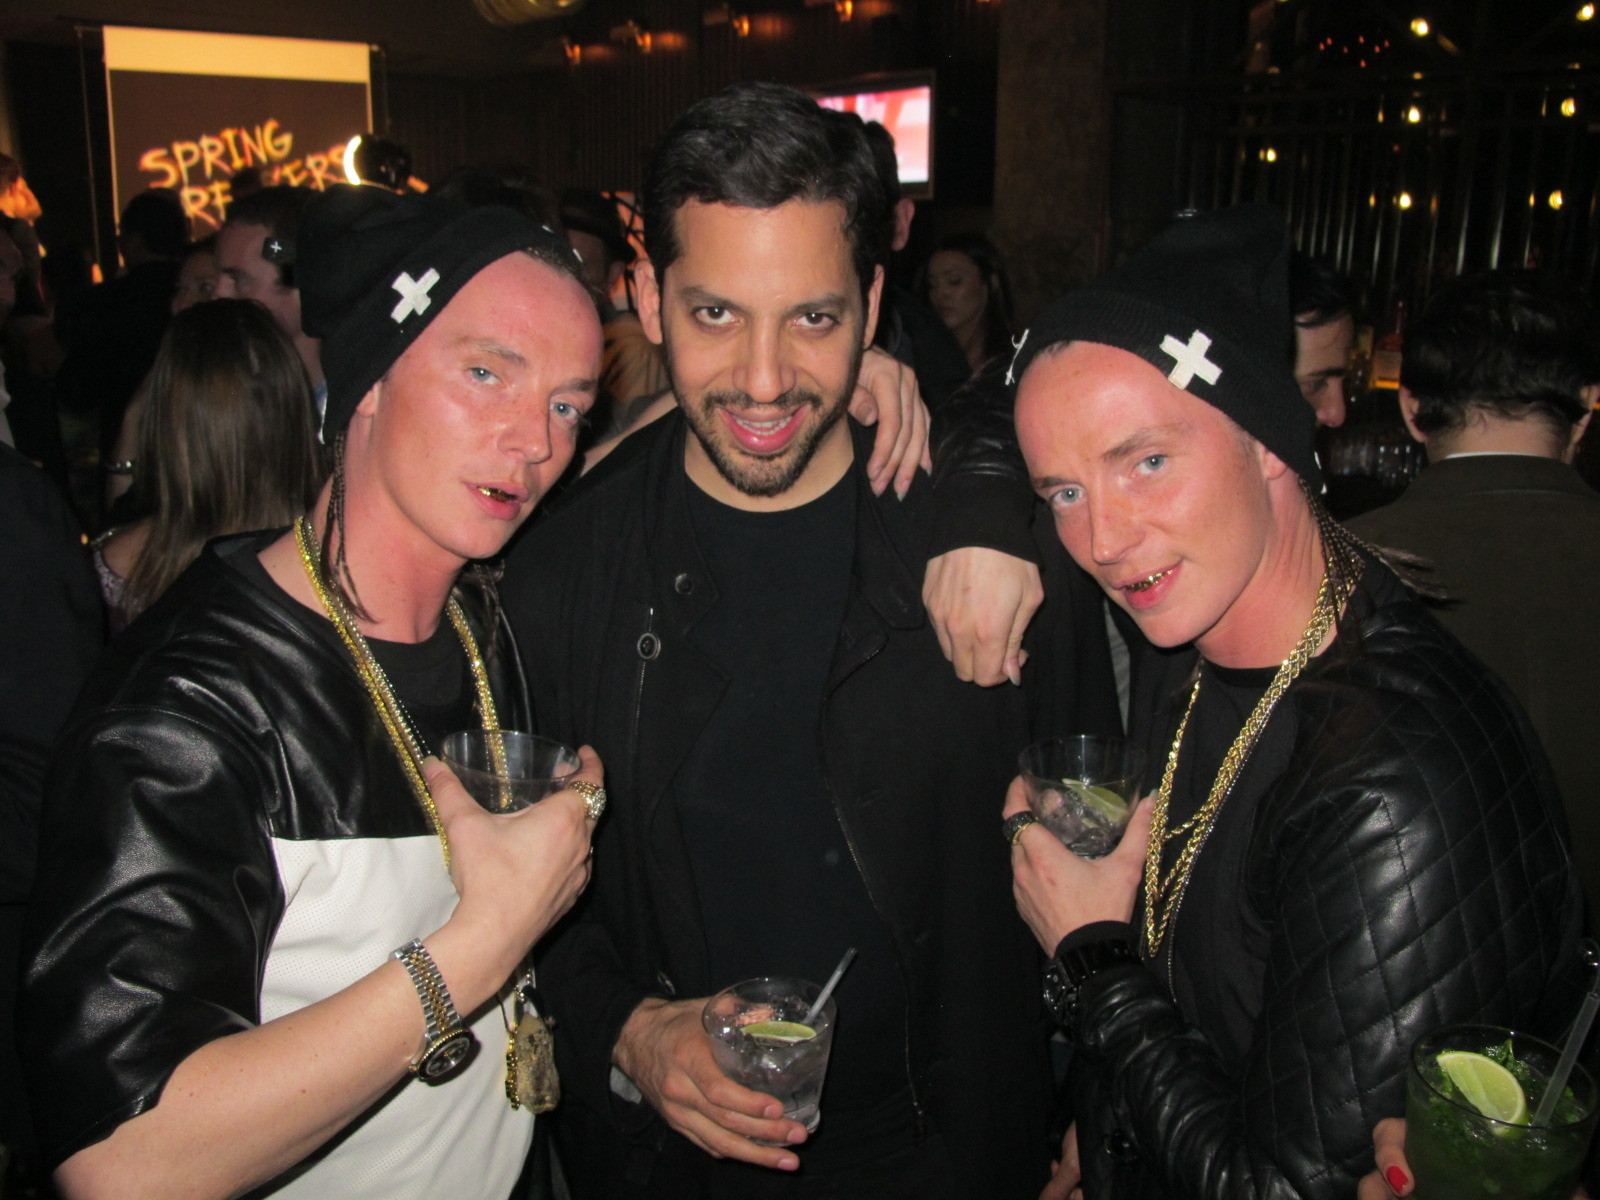 David Blaine is becoming a really special friend to us, thanks to Harmony Korine! He's got chicks all over the world convinced he's the leader of the Illuminati and possibly even the devil himself! He's blown our minds with his magic many times!